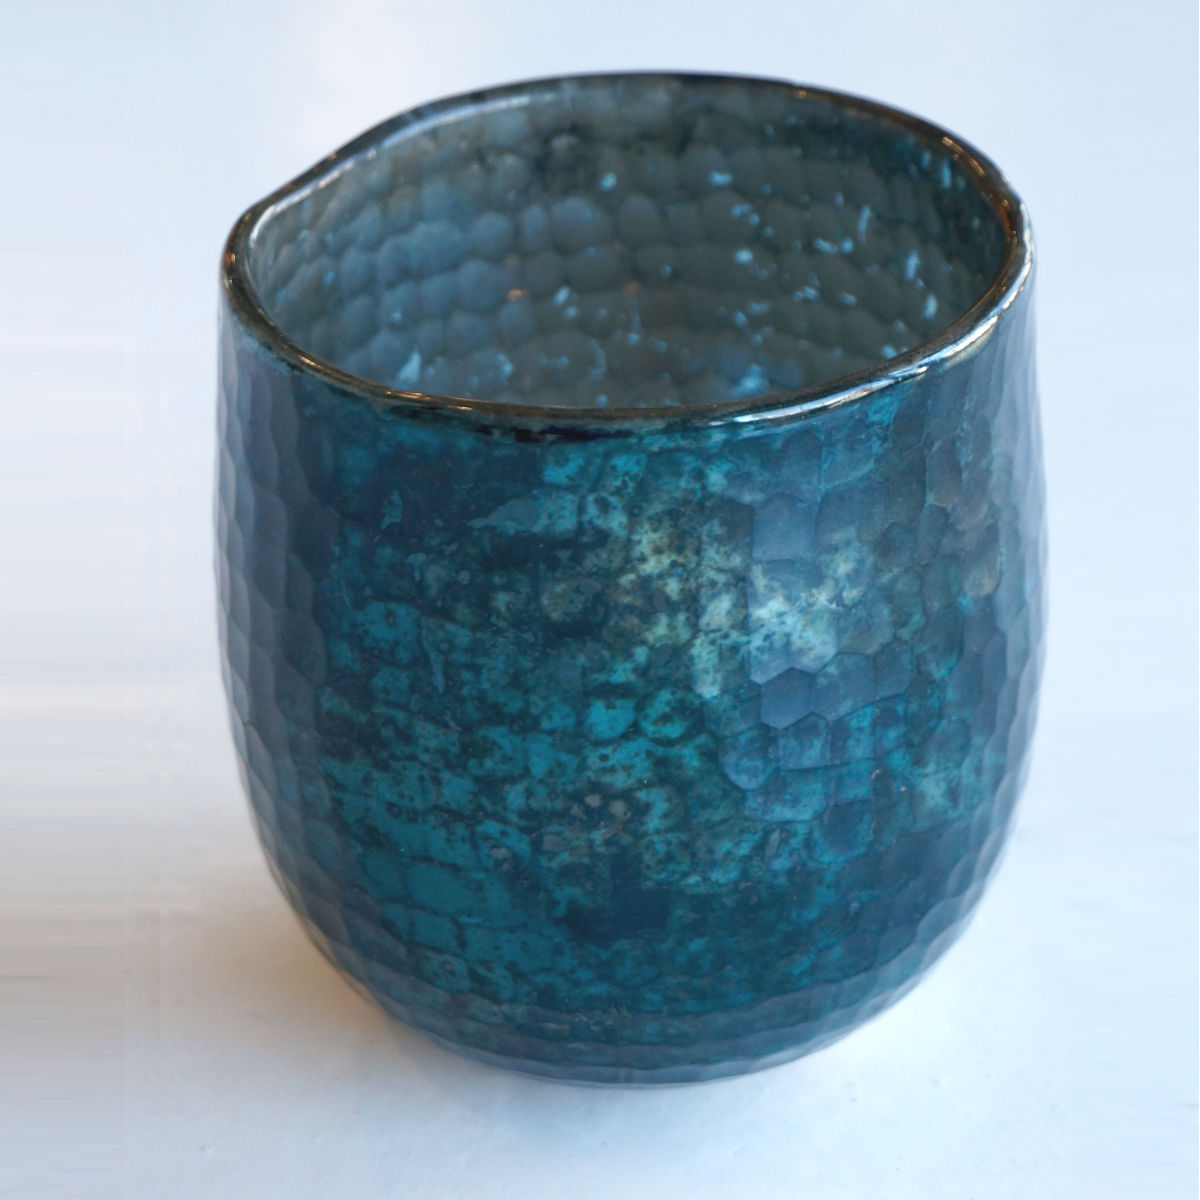 AH011 vase in shiny teal and black oxidization with hammered cut edge